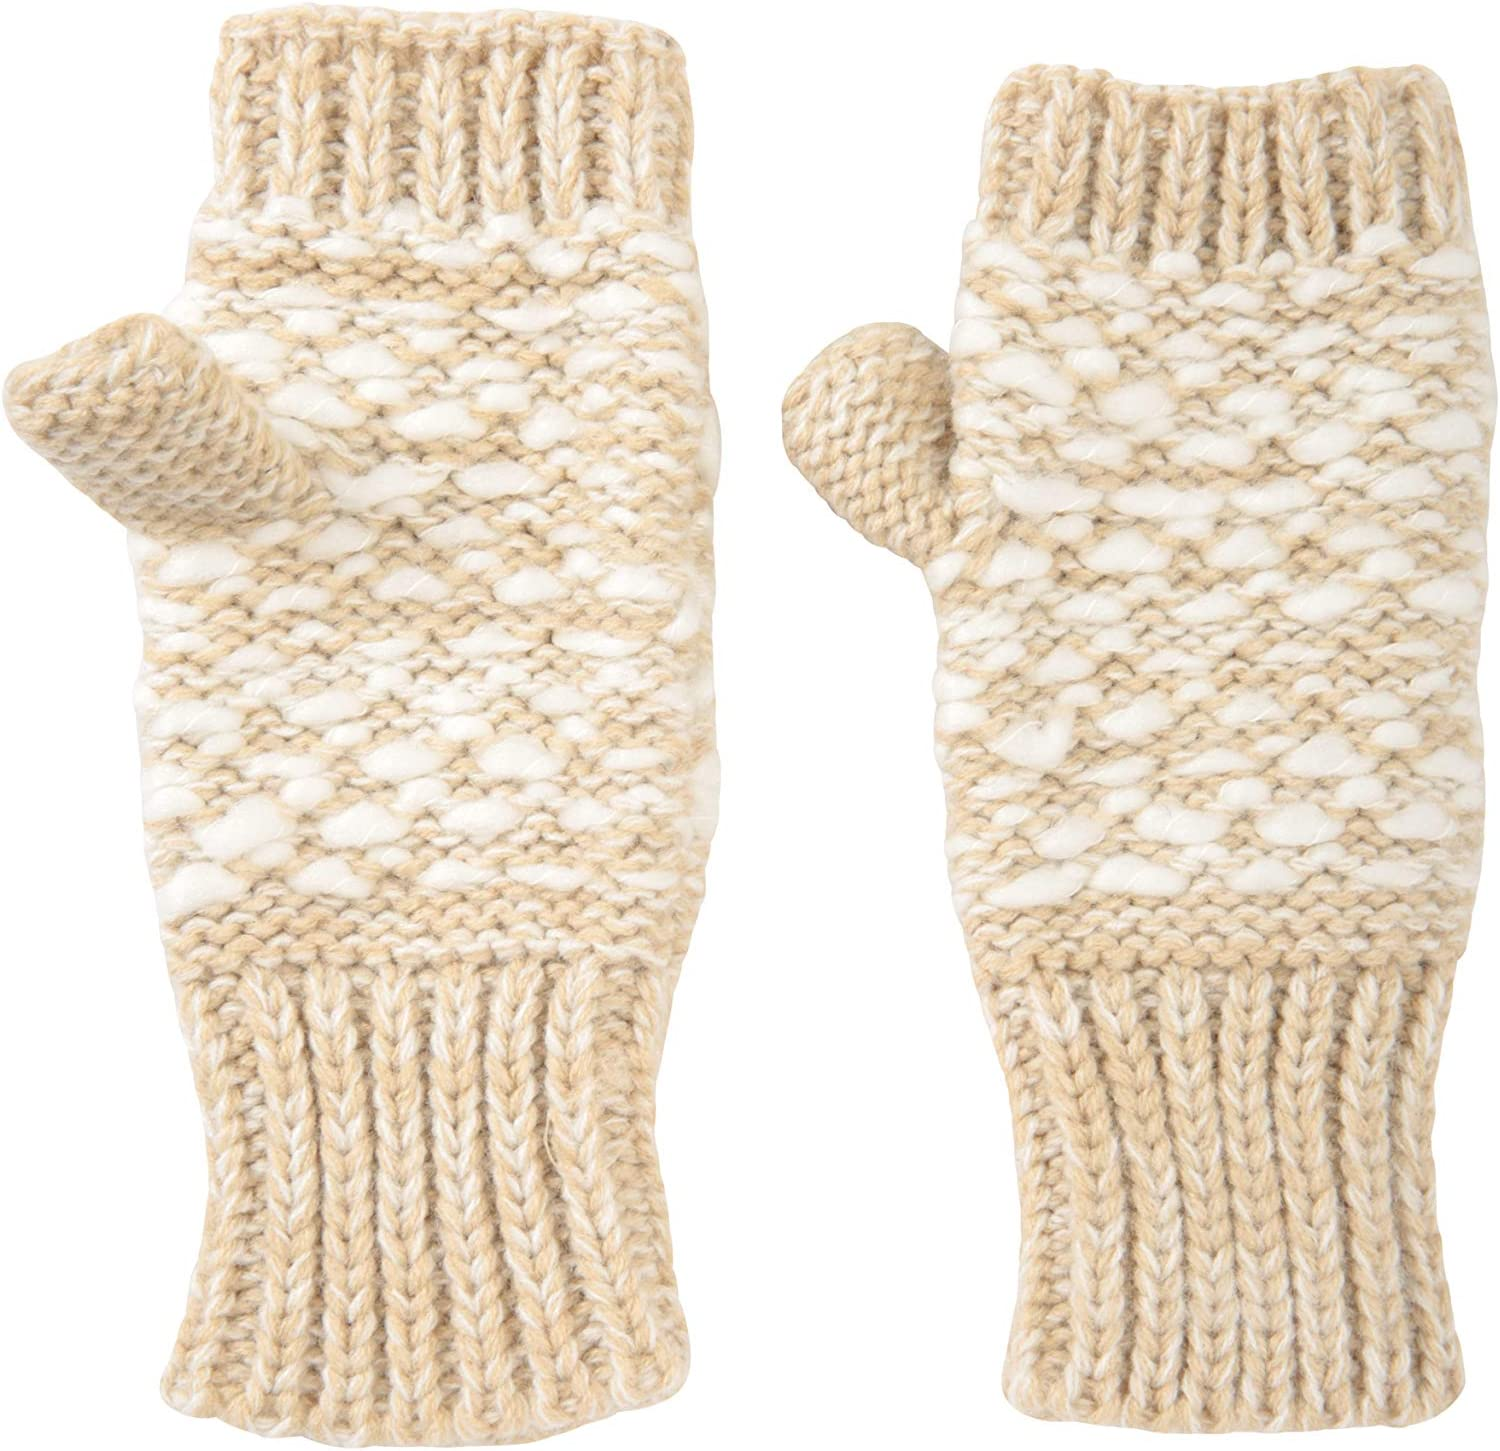 Mountain Warehouse Patterned Knitted Womens Mittens - Winter Gloves